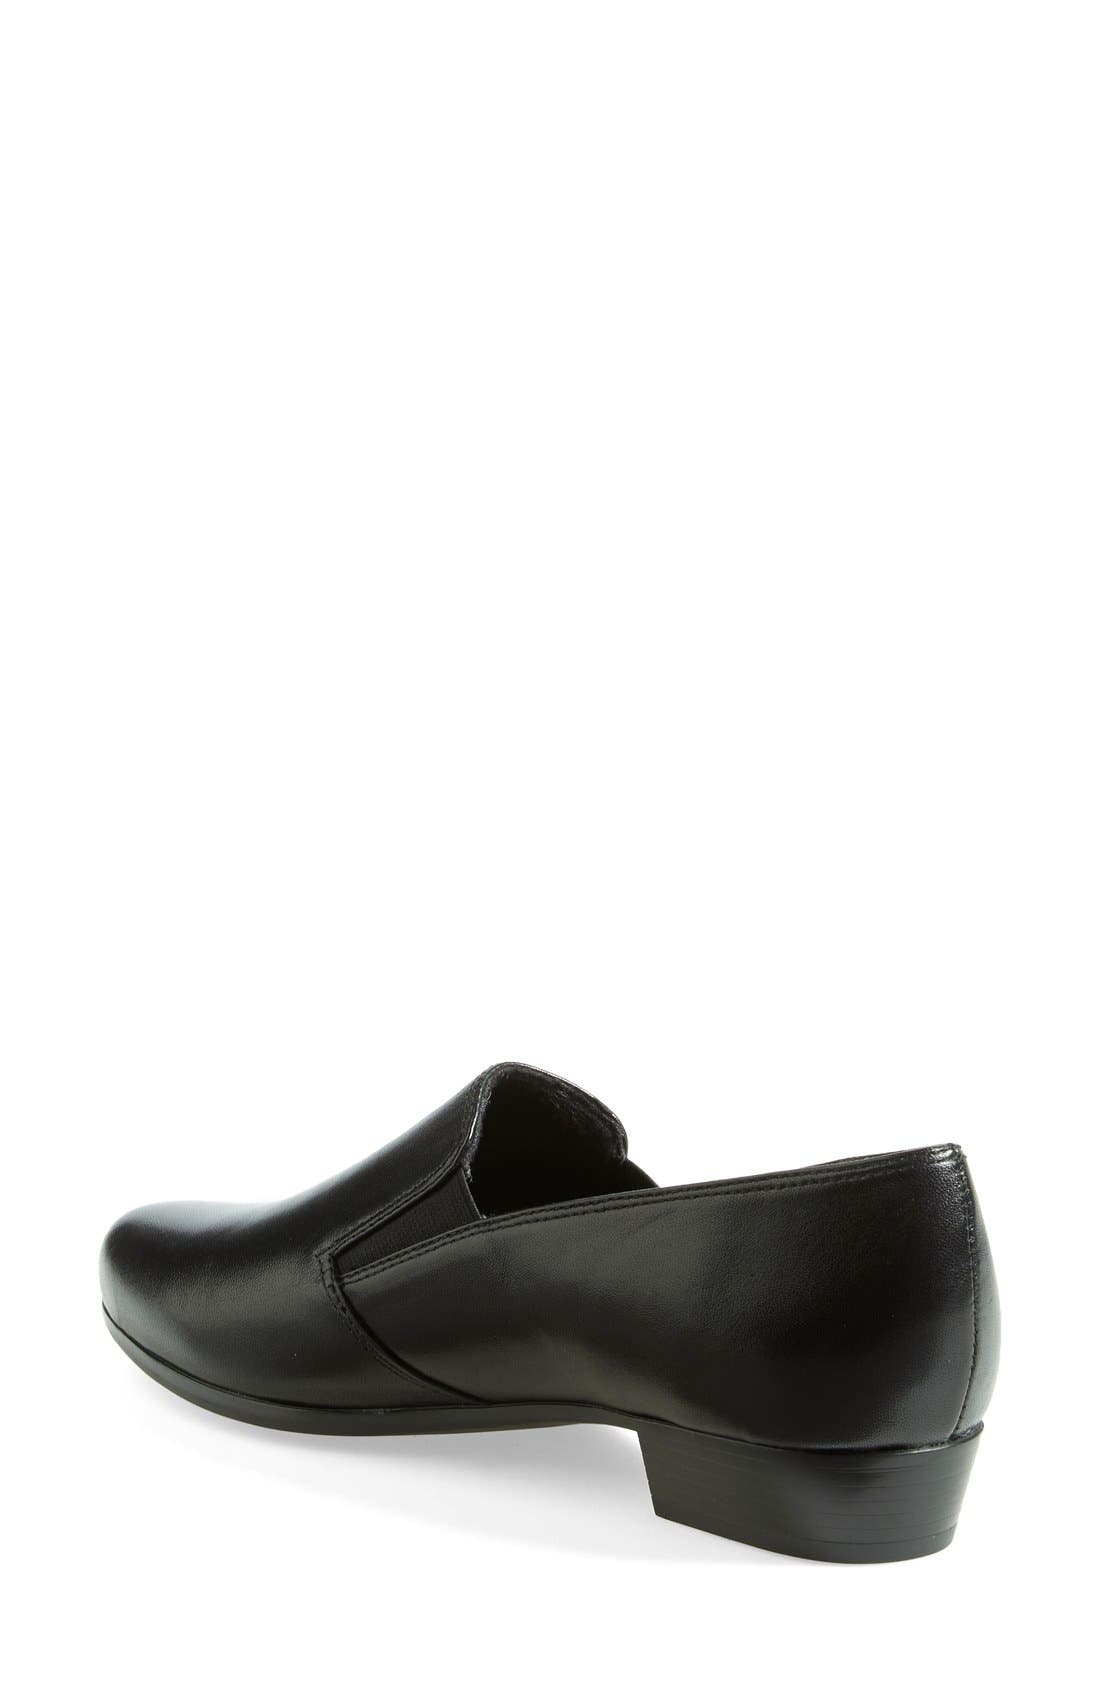 'Hailey' Leather Loafer,                             Alternate thumbnail 4, color,                             001